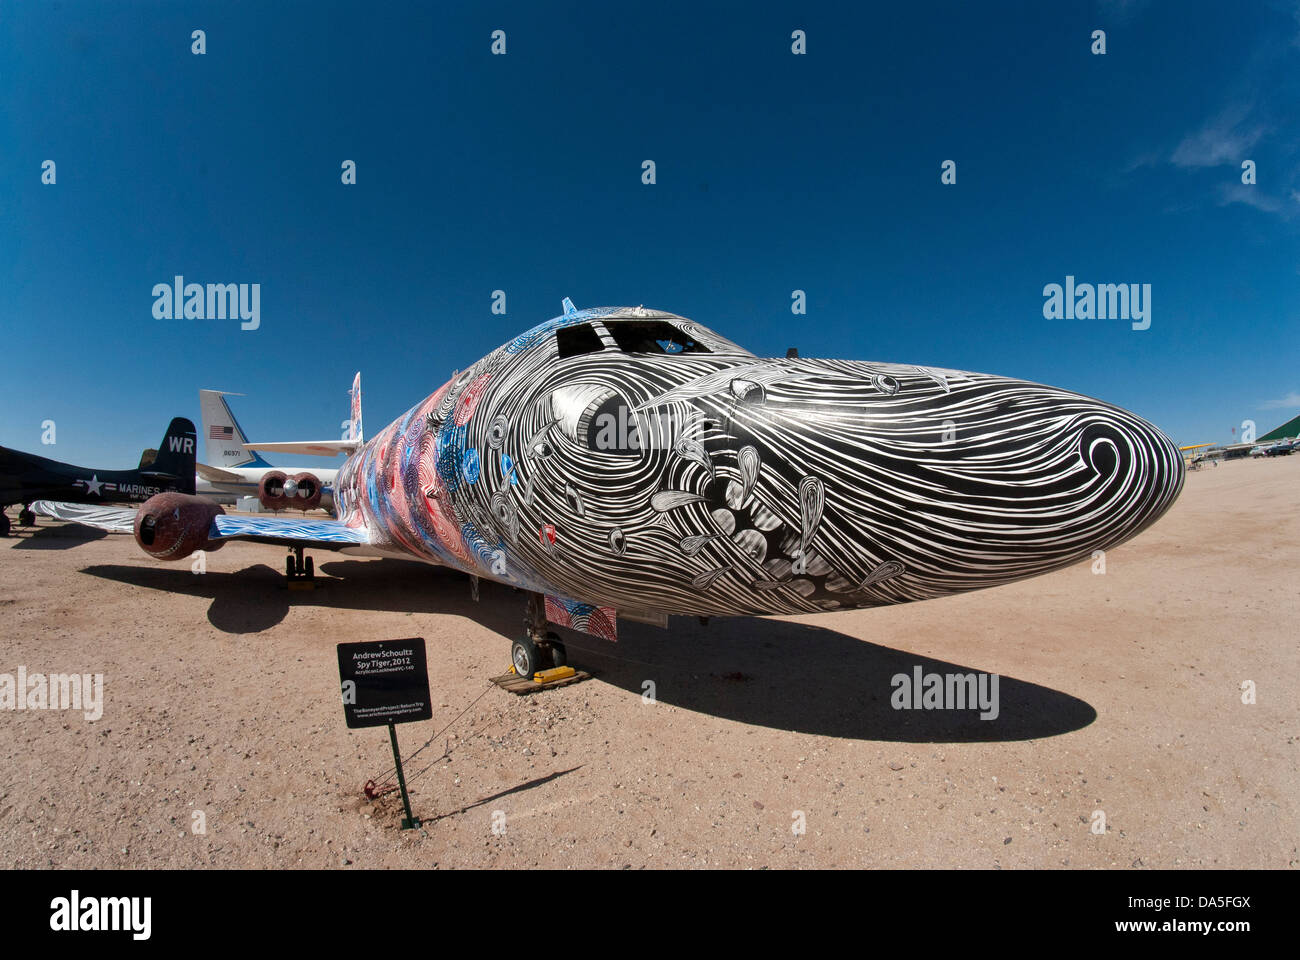 Davis Monthan Boneyard >> bone yard, largest, aircraft, graveyard, Davis, monthan, air force Stock Photo: 57899658 - Alamy